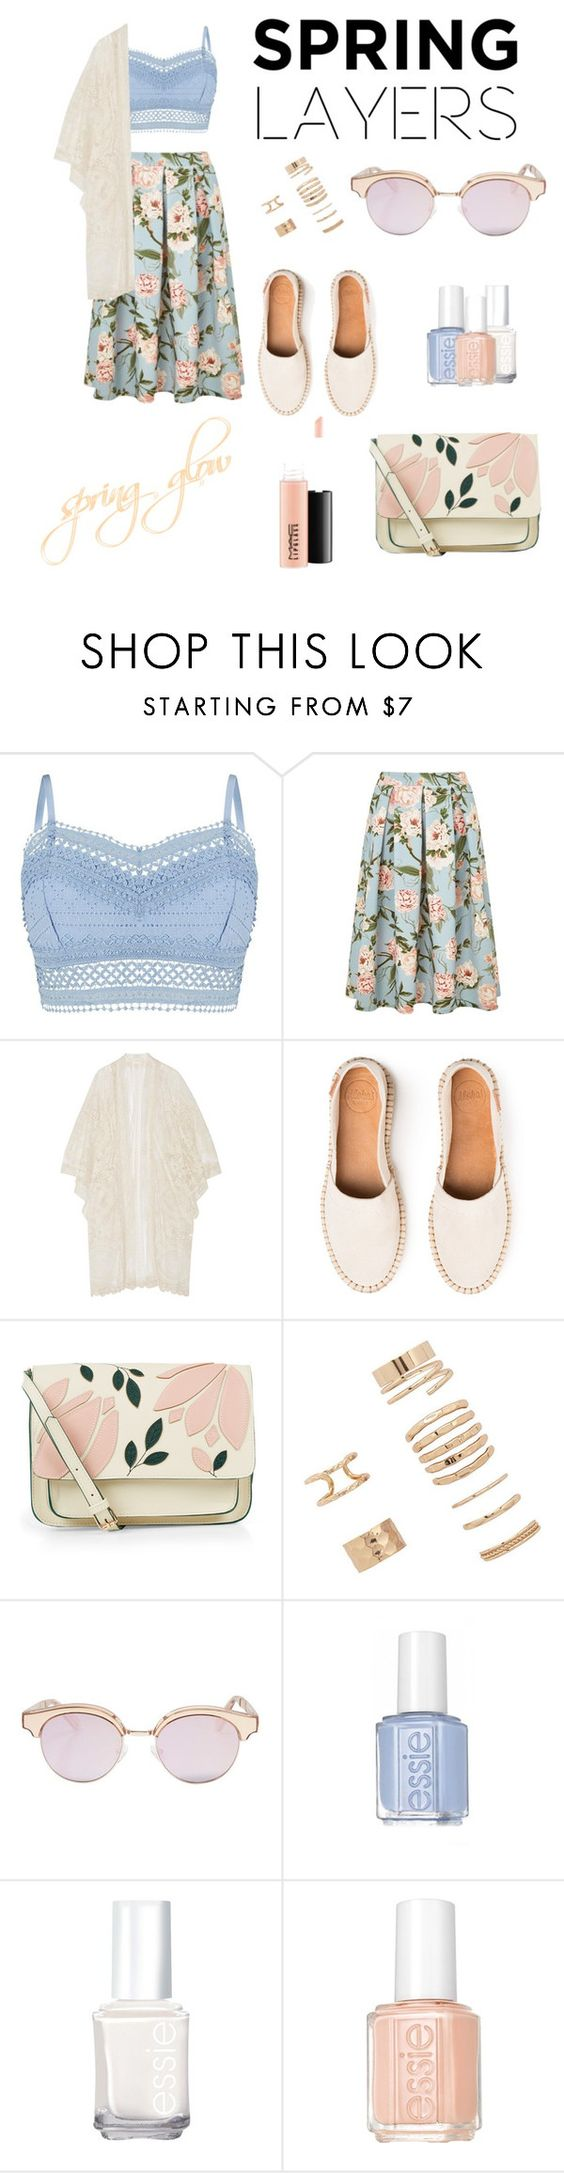 """""""springtime"""" by agnessavr ❤ liked on Polyvore featuring Lipsy, Miss Selfridge, Anna Sui, Accessorize, Forever 21, Le Specs, Essie, MAC Cosmetics, springtime and cutecardigan"""